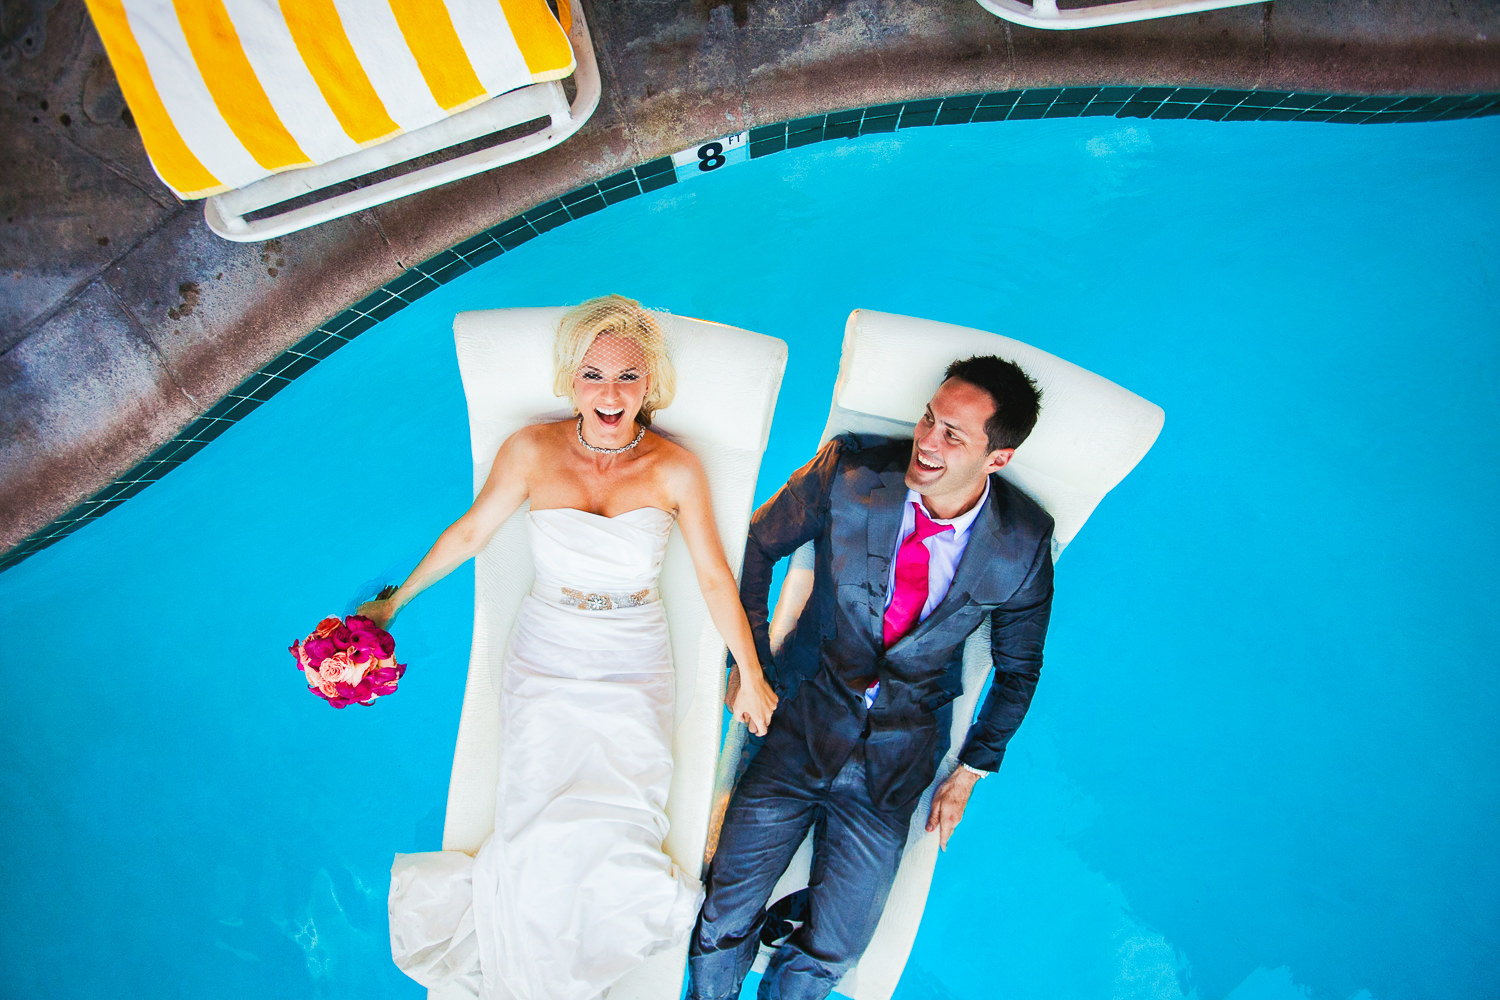 Avalon Palm Springs Photographer - Together in the pool